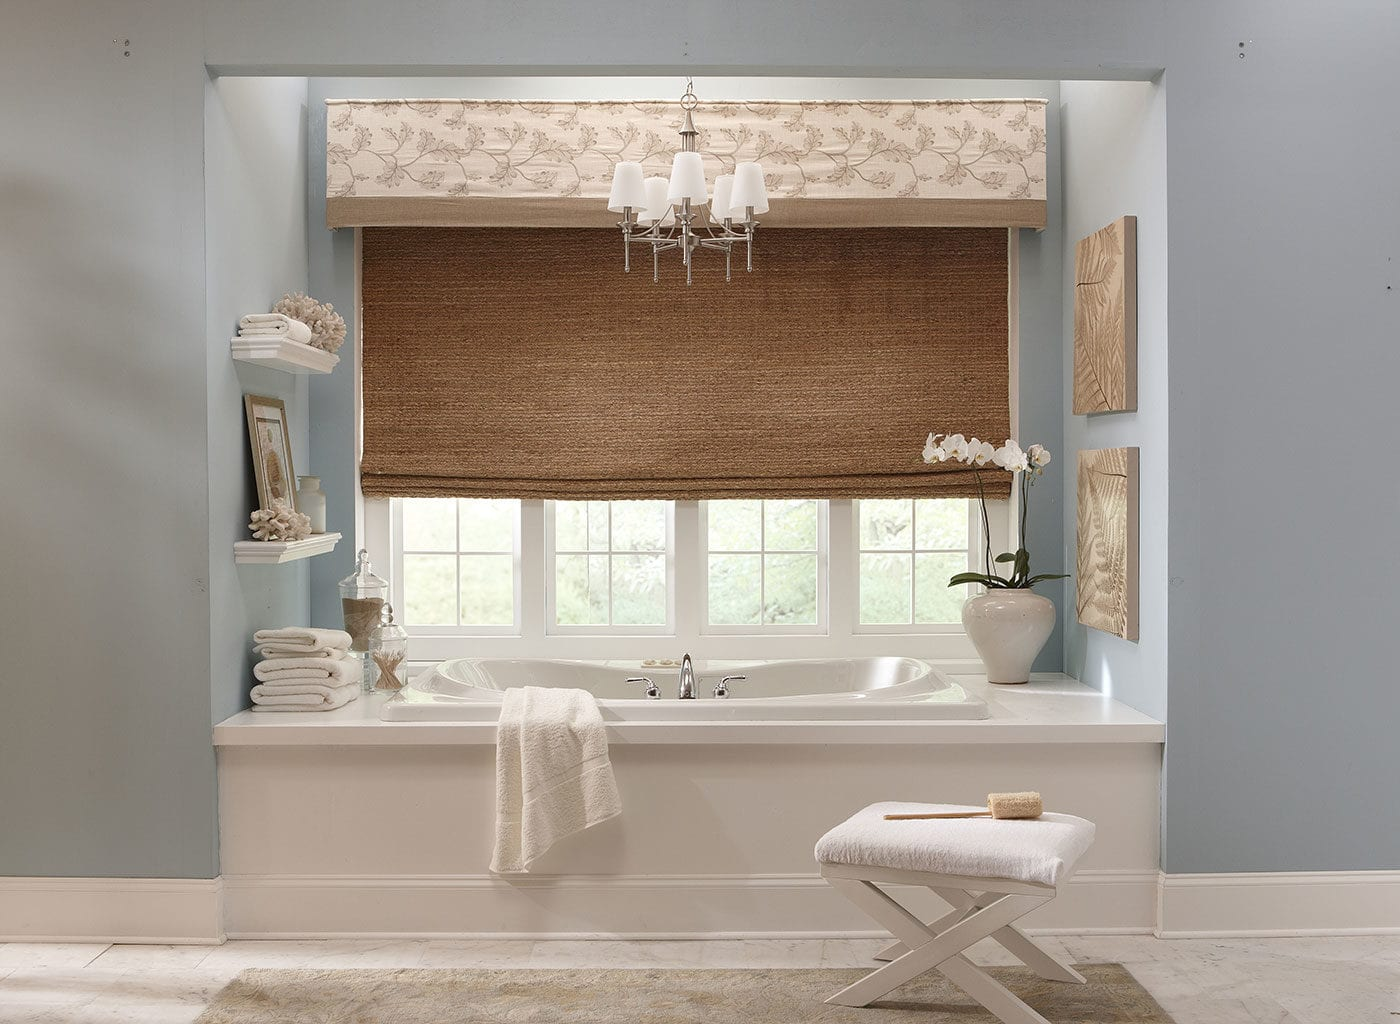 Cornice Fabric Pattern Woven Wood Window Treatments Curtains Drapes Draperies Blinds Horizon Bathroom Spa